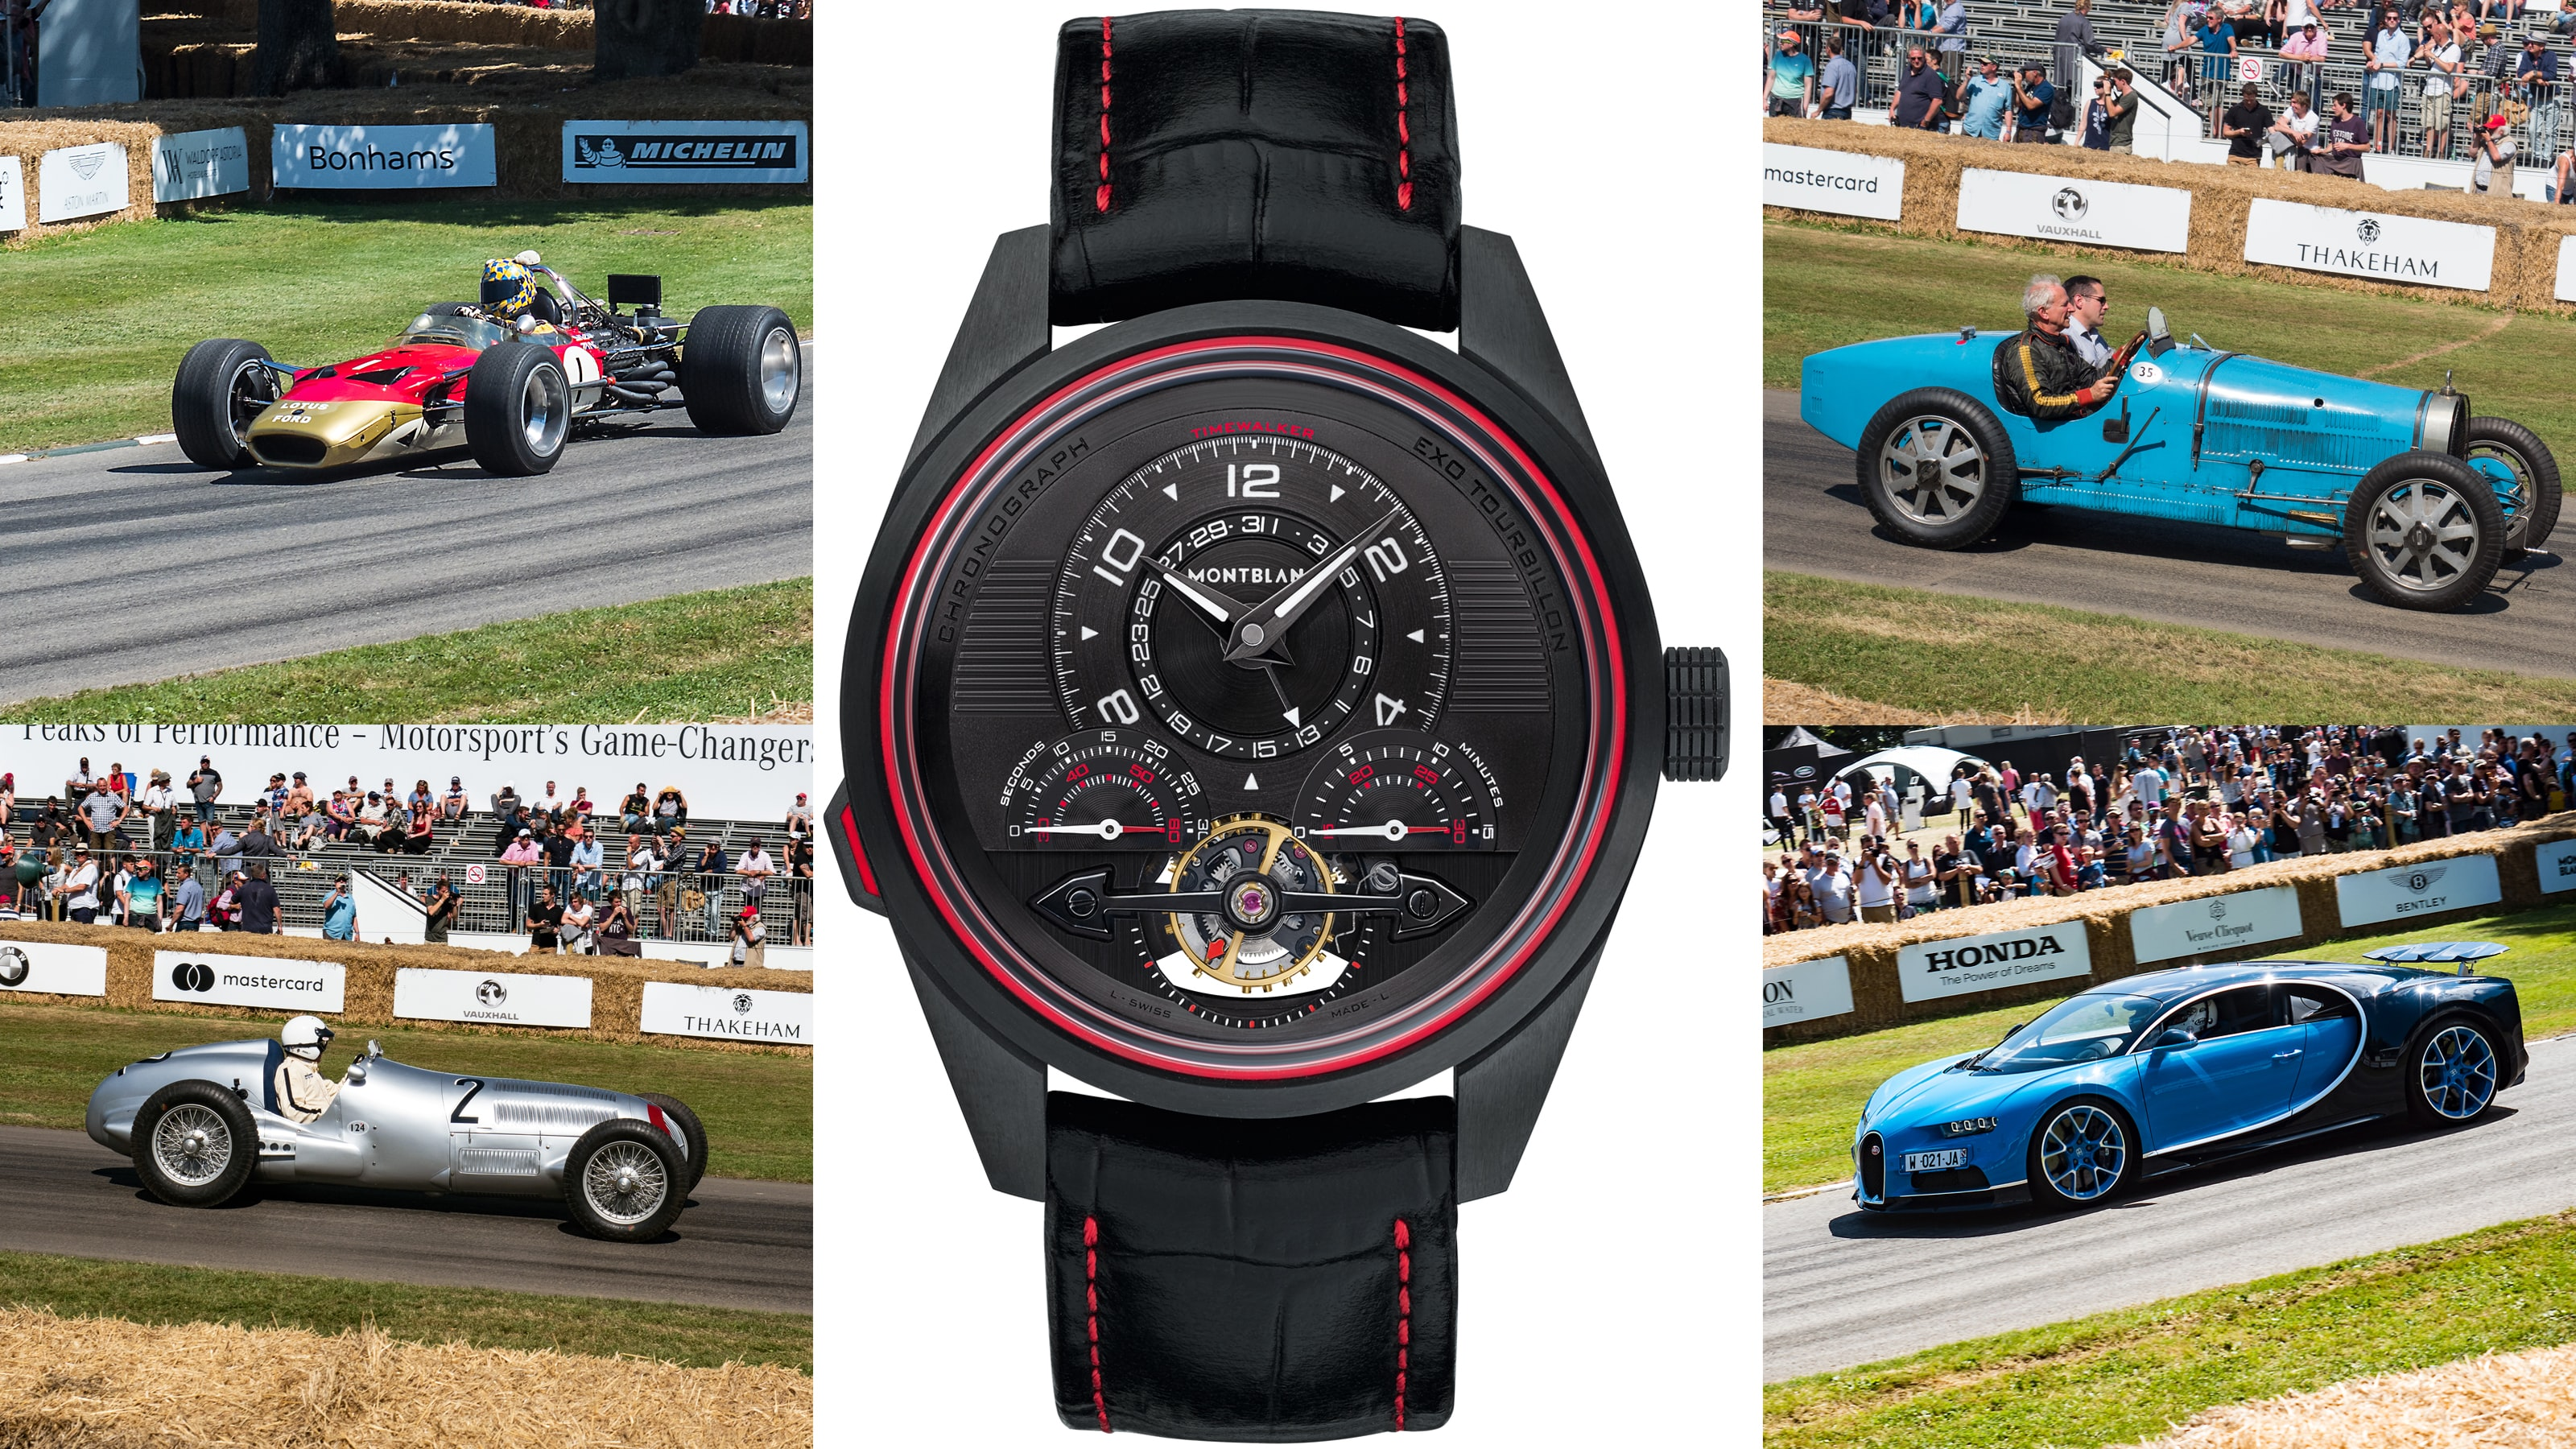 Goodwood hero.jpg?ixlib=rails 1.1 dispatches: with montblanc at the petrolhead's paradise that is the goodwood festival of speed Dispatches: With Montblanc At The Petrolhead's Paradise That Is The Goodwood Festival Of Speed goodwood hero